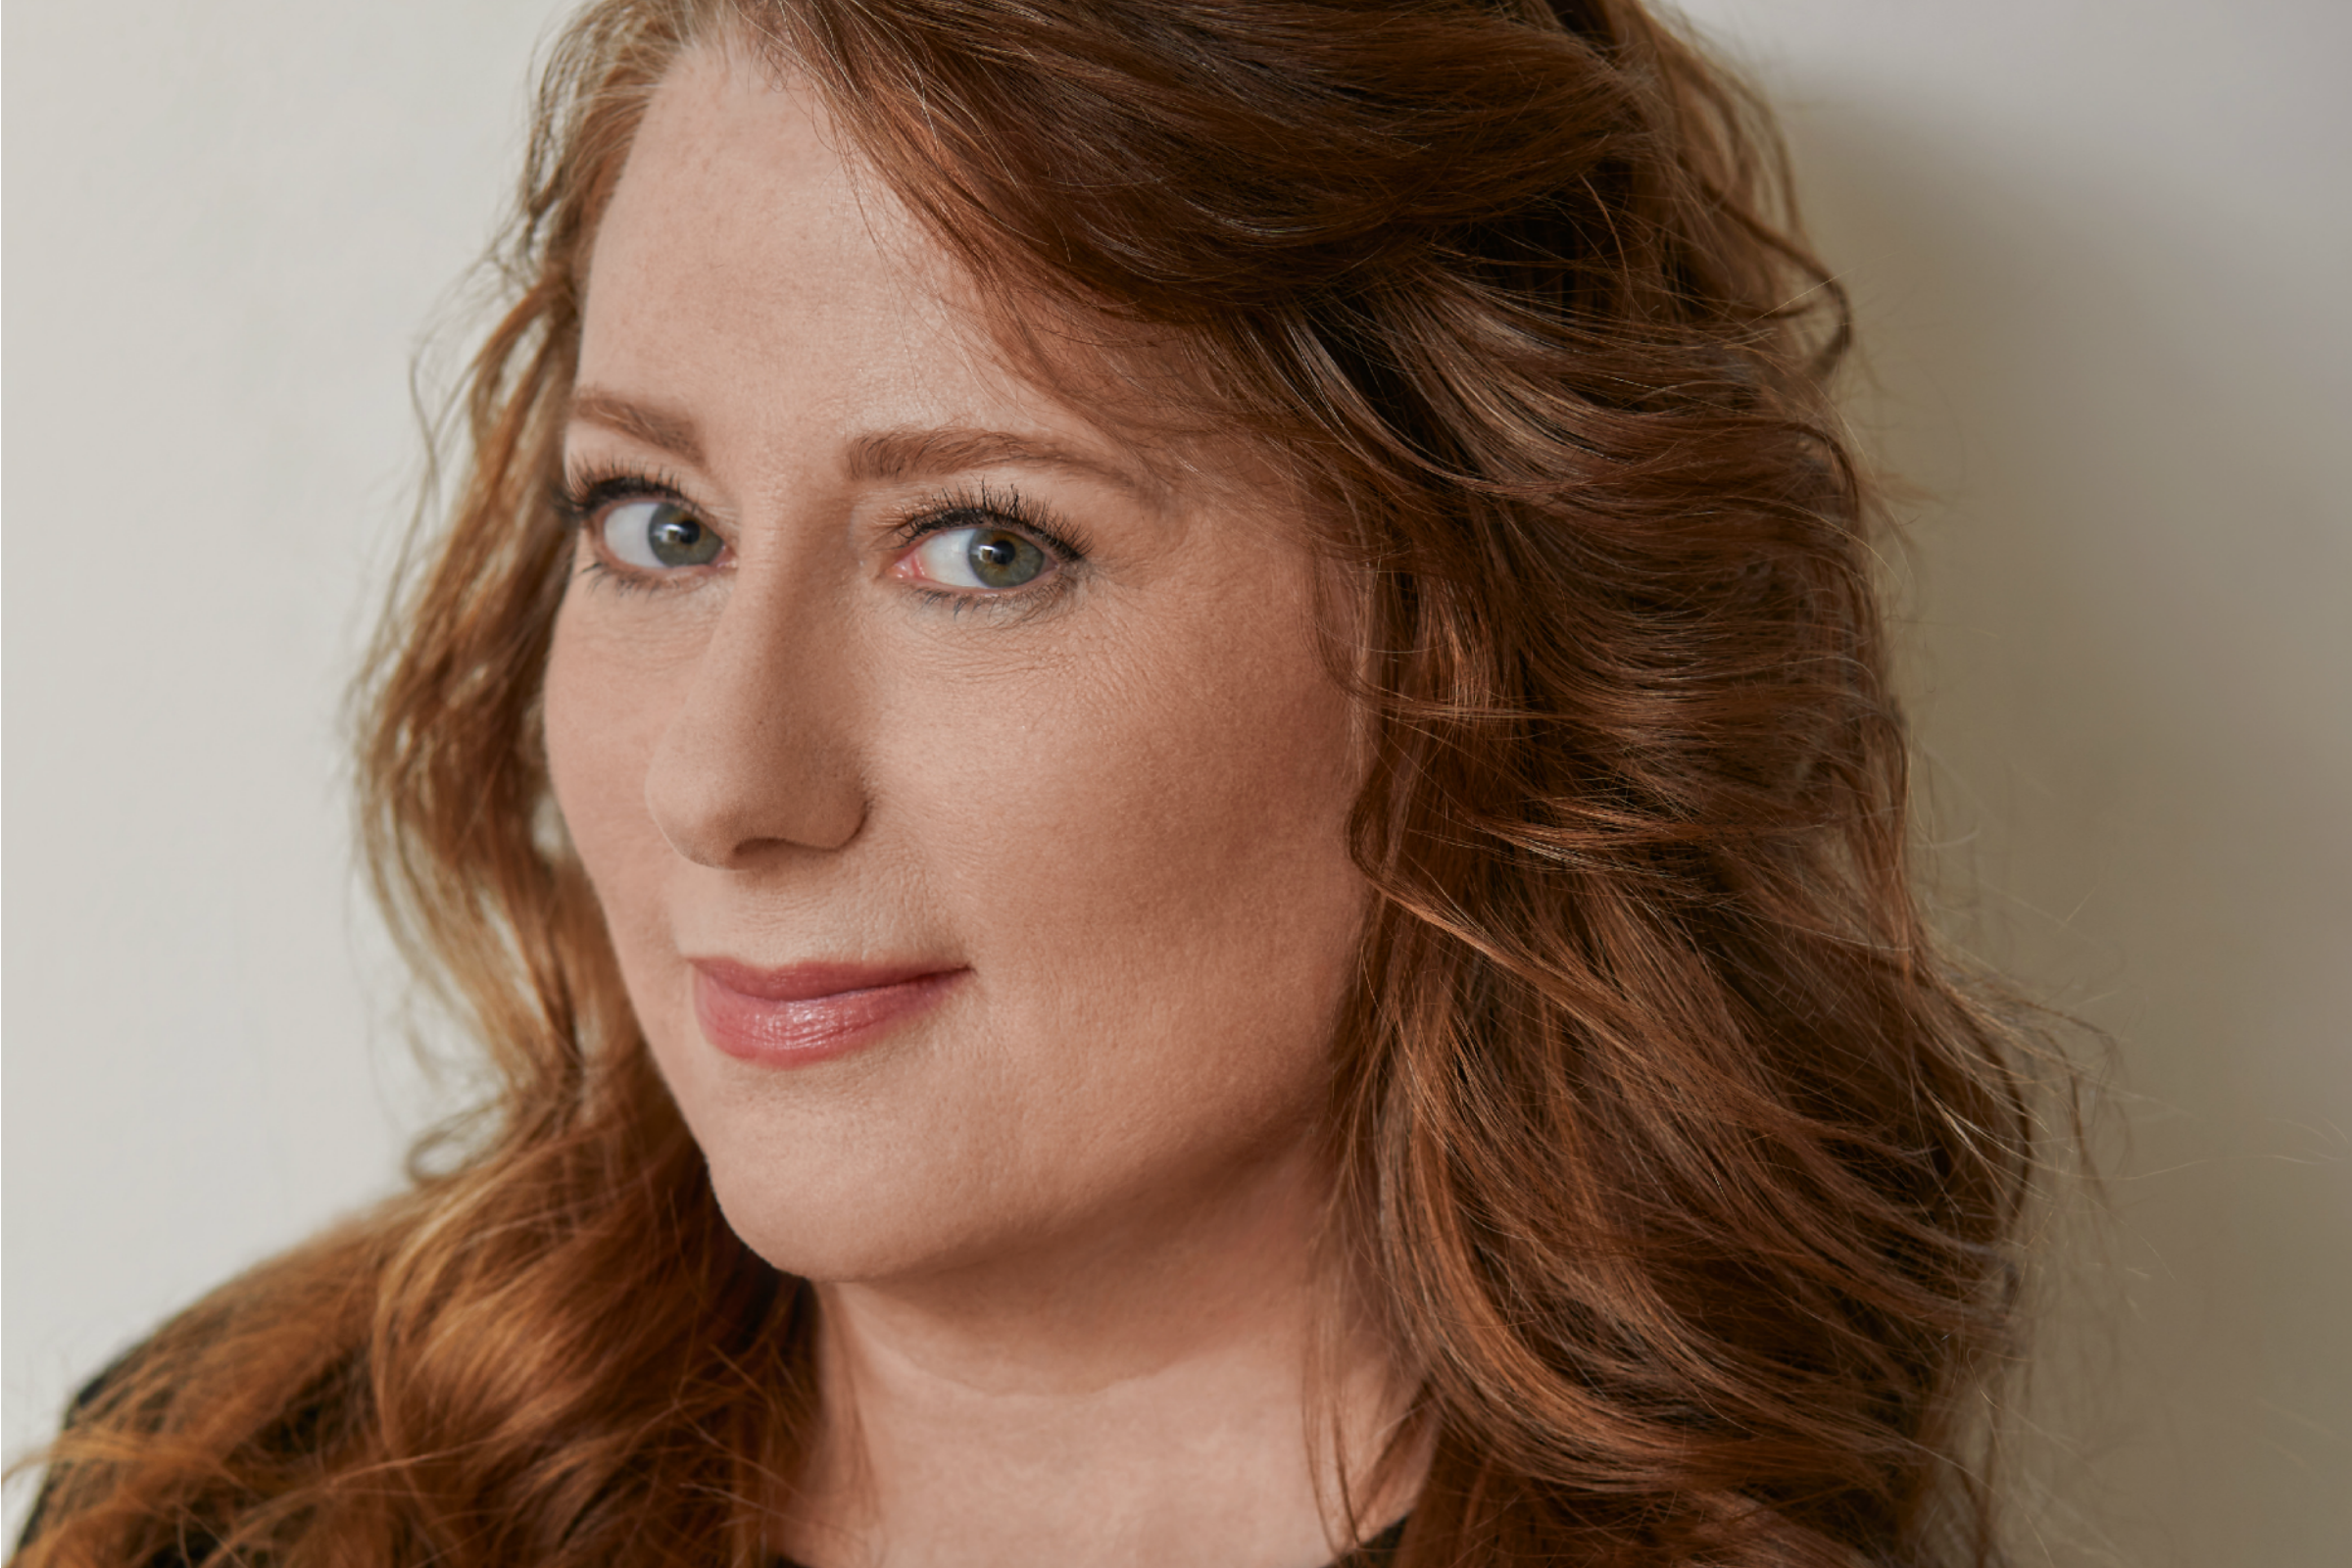 Woman with red hair turns her green eyes toward the camera with a slight smile on her face.